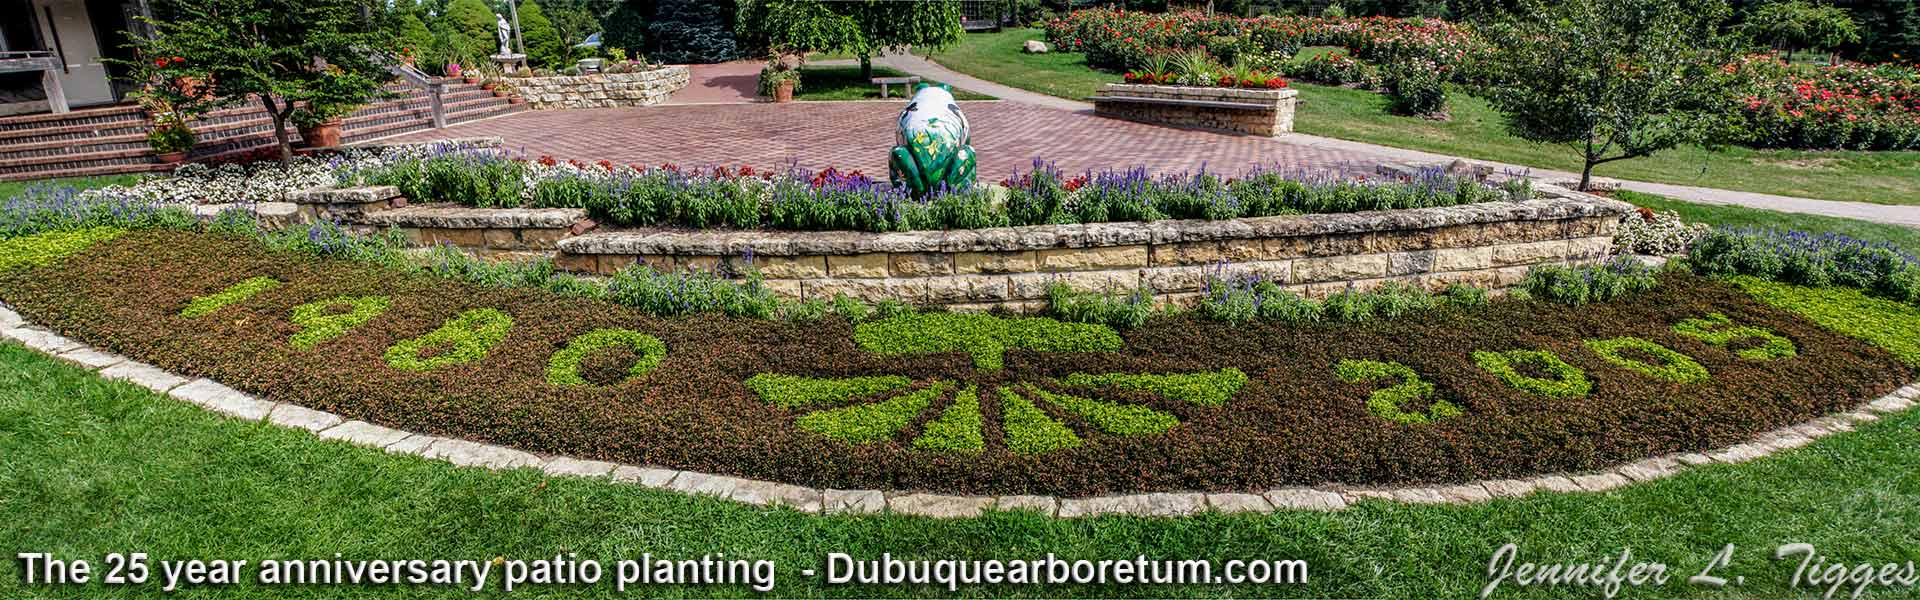 Weddings fans and friends of the dubuque arboretum - Dubuque arboretum and botanical gardens ...